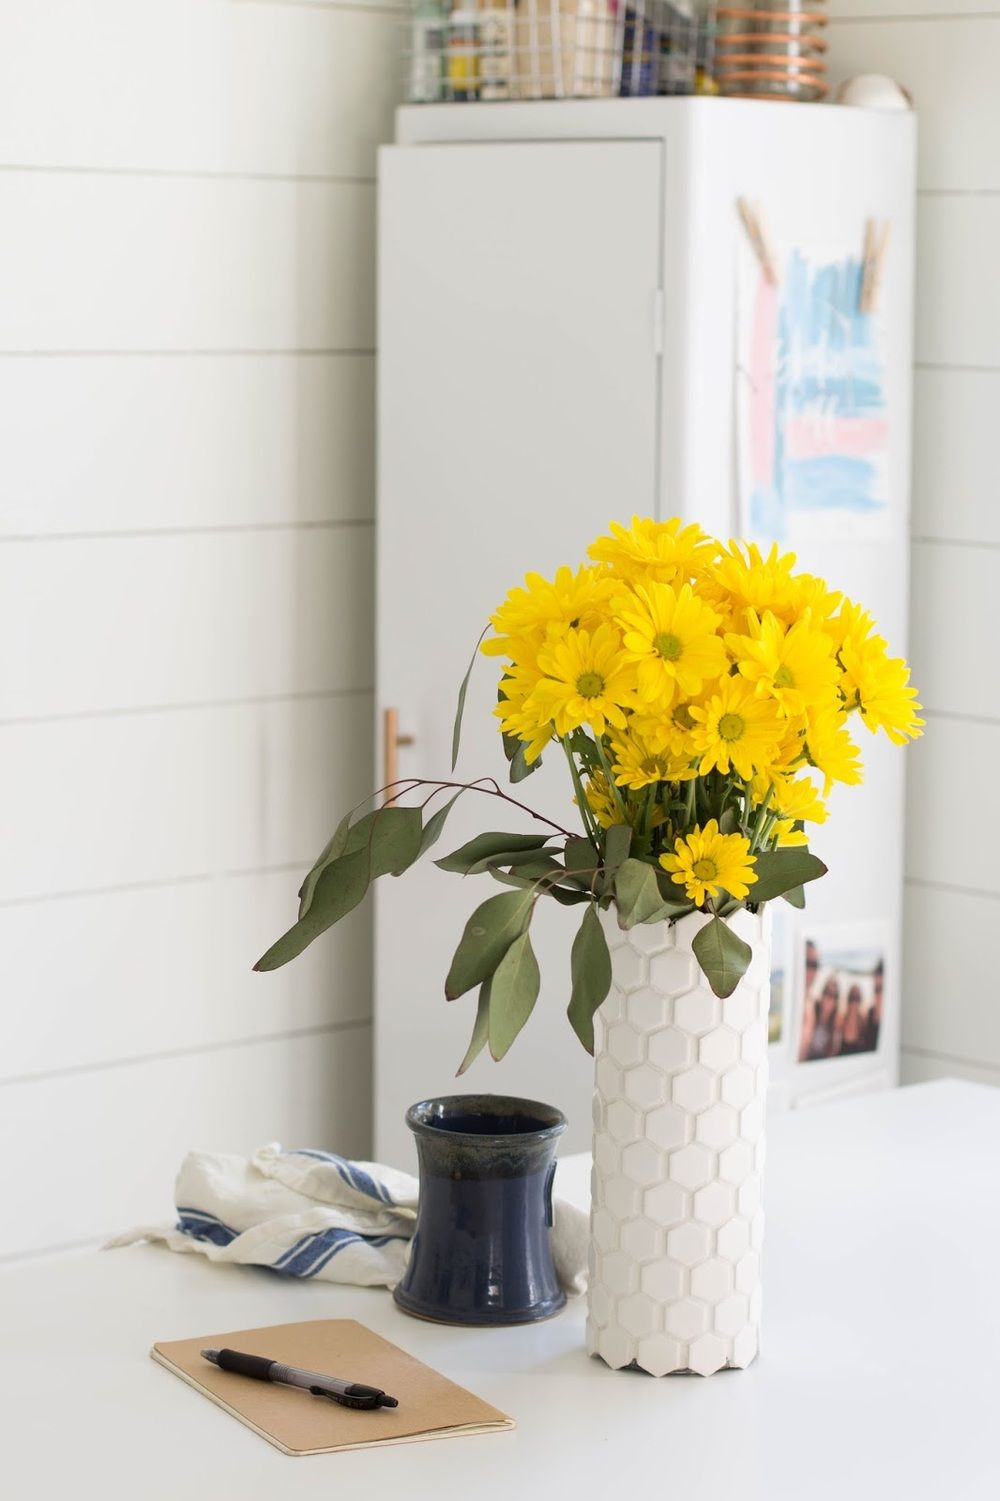 Make It Do It Yourself Honeycomb Vase With Leftover Tile